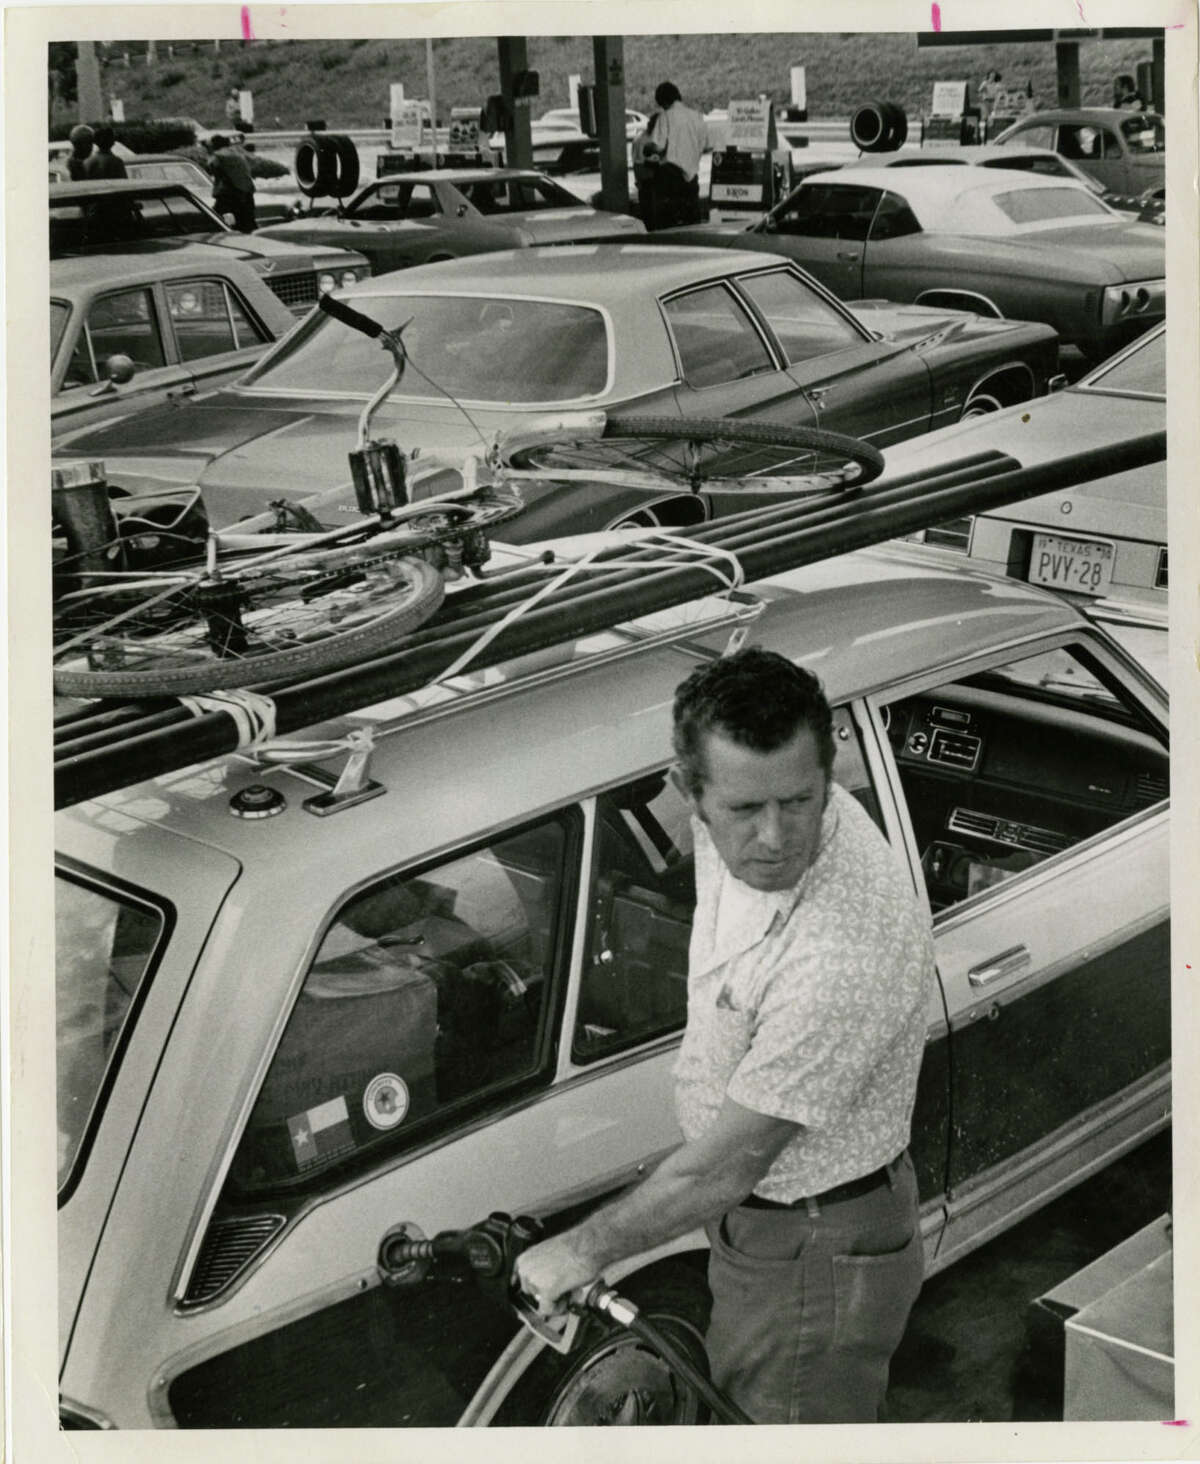 03/01/1974 - Alfred Wilson fills up his car in a crowded Exxon service station at Newcastle and the Southwest Freeway. The station opened their pumps at 3:00 pm today. Wilson drives around with a bicycle on top of his car in case he runs out of gas and has to cycle to a service station.